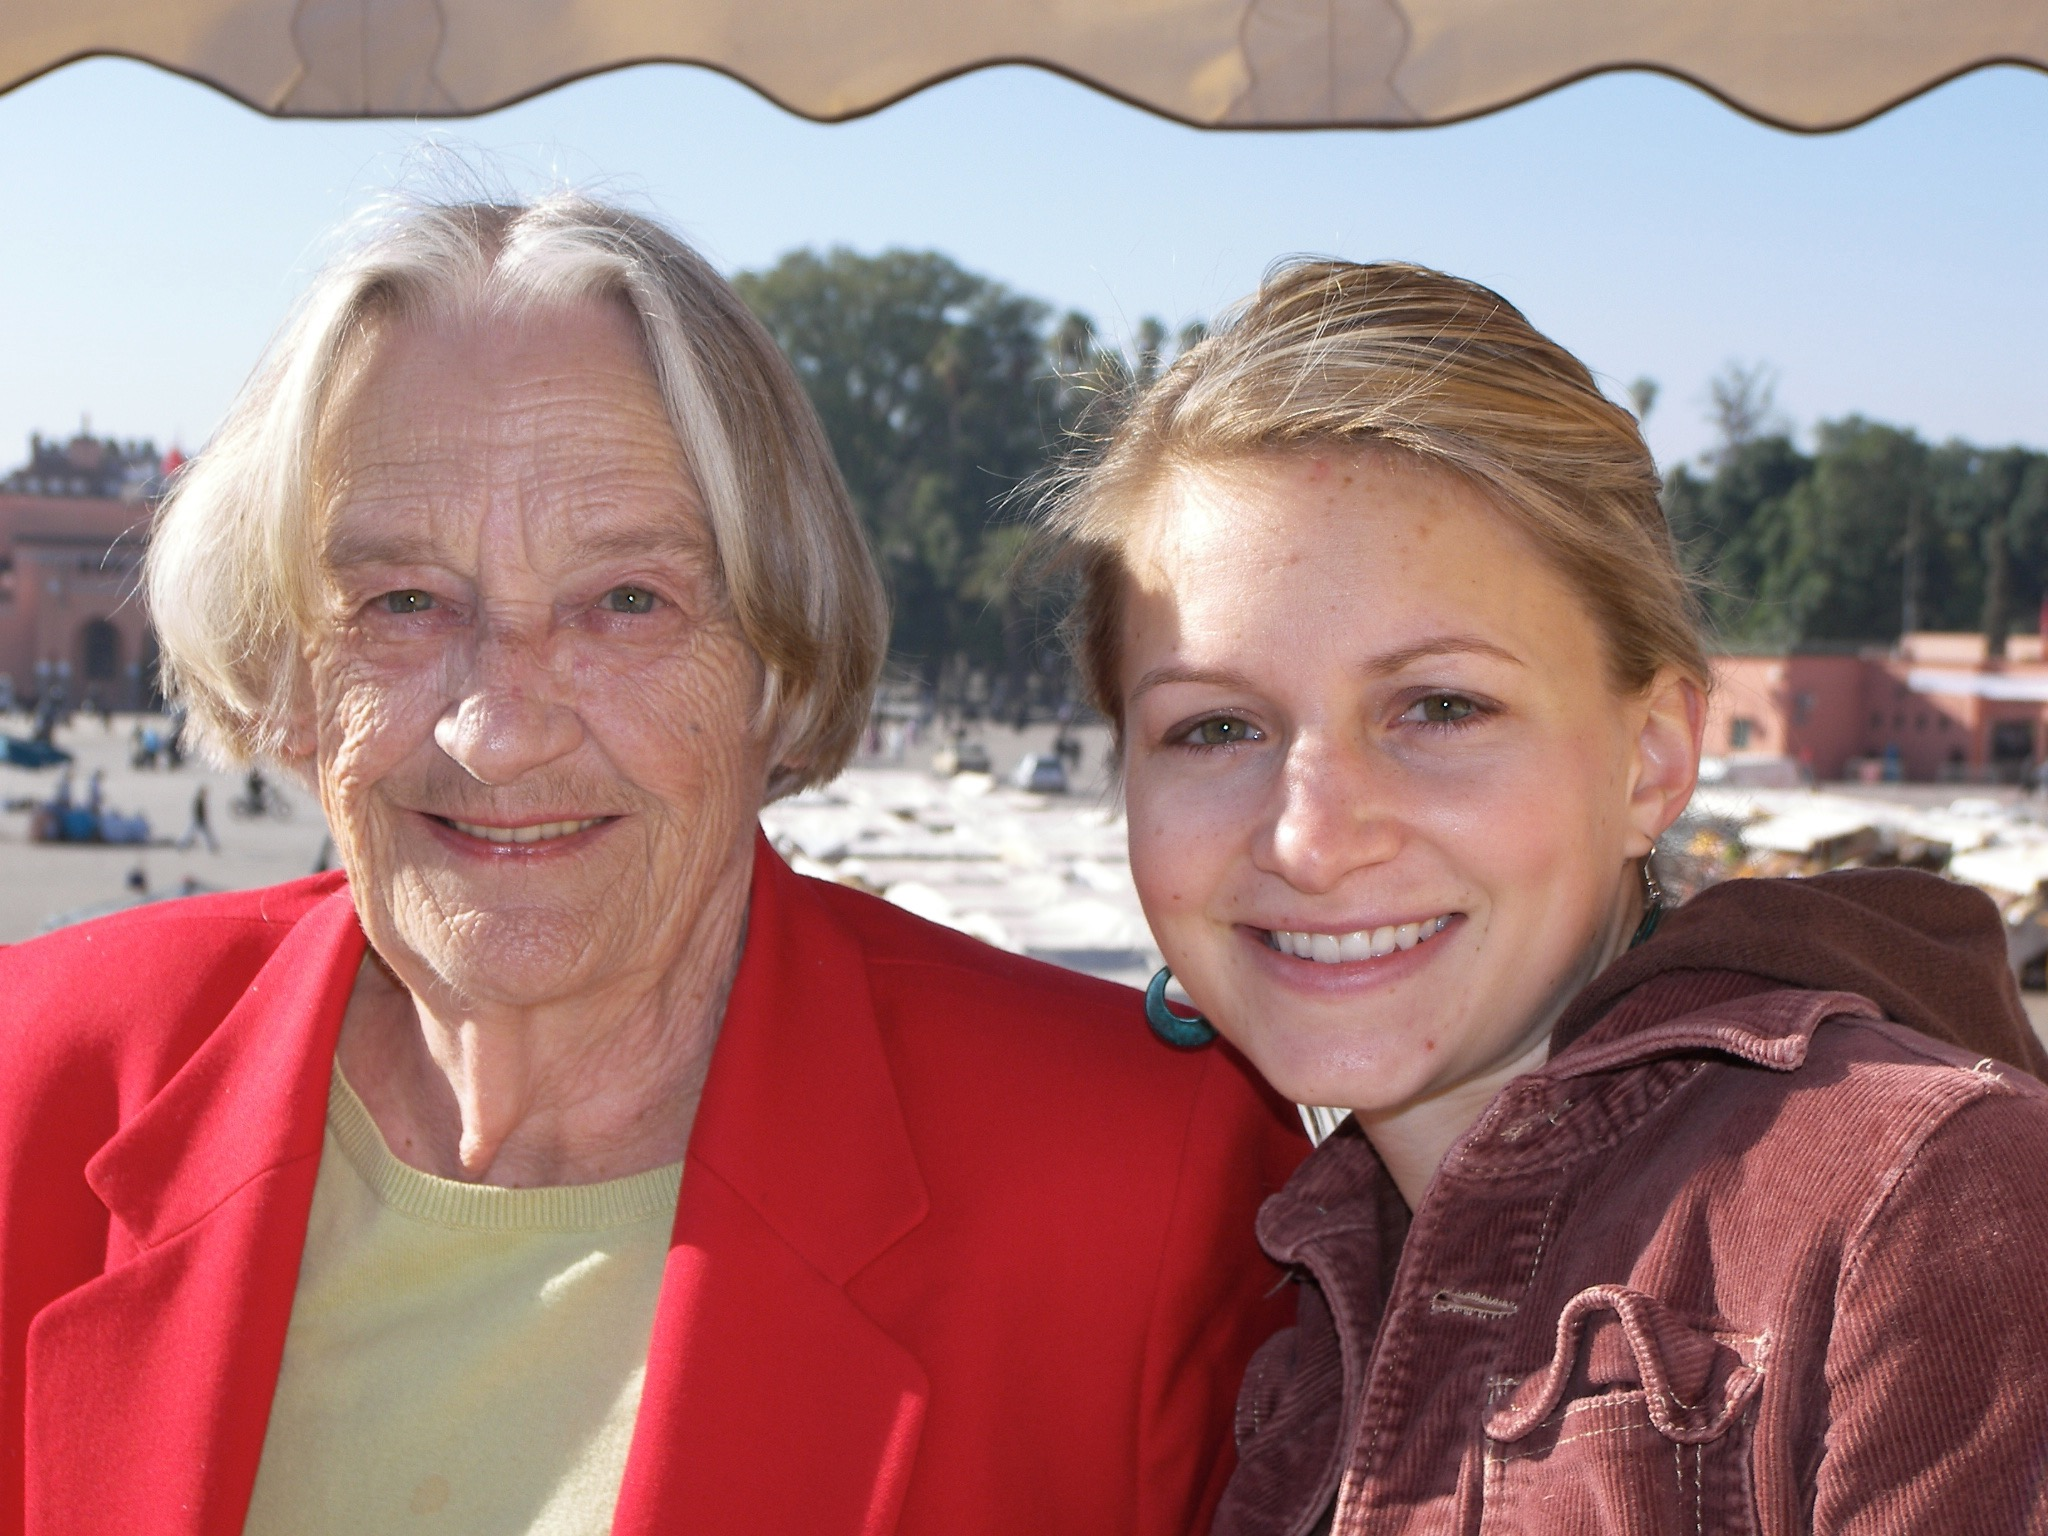 Ashley with her grandmother in Morocco, 2009. Grandmas are moms too!